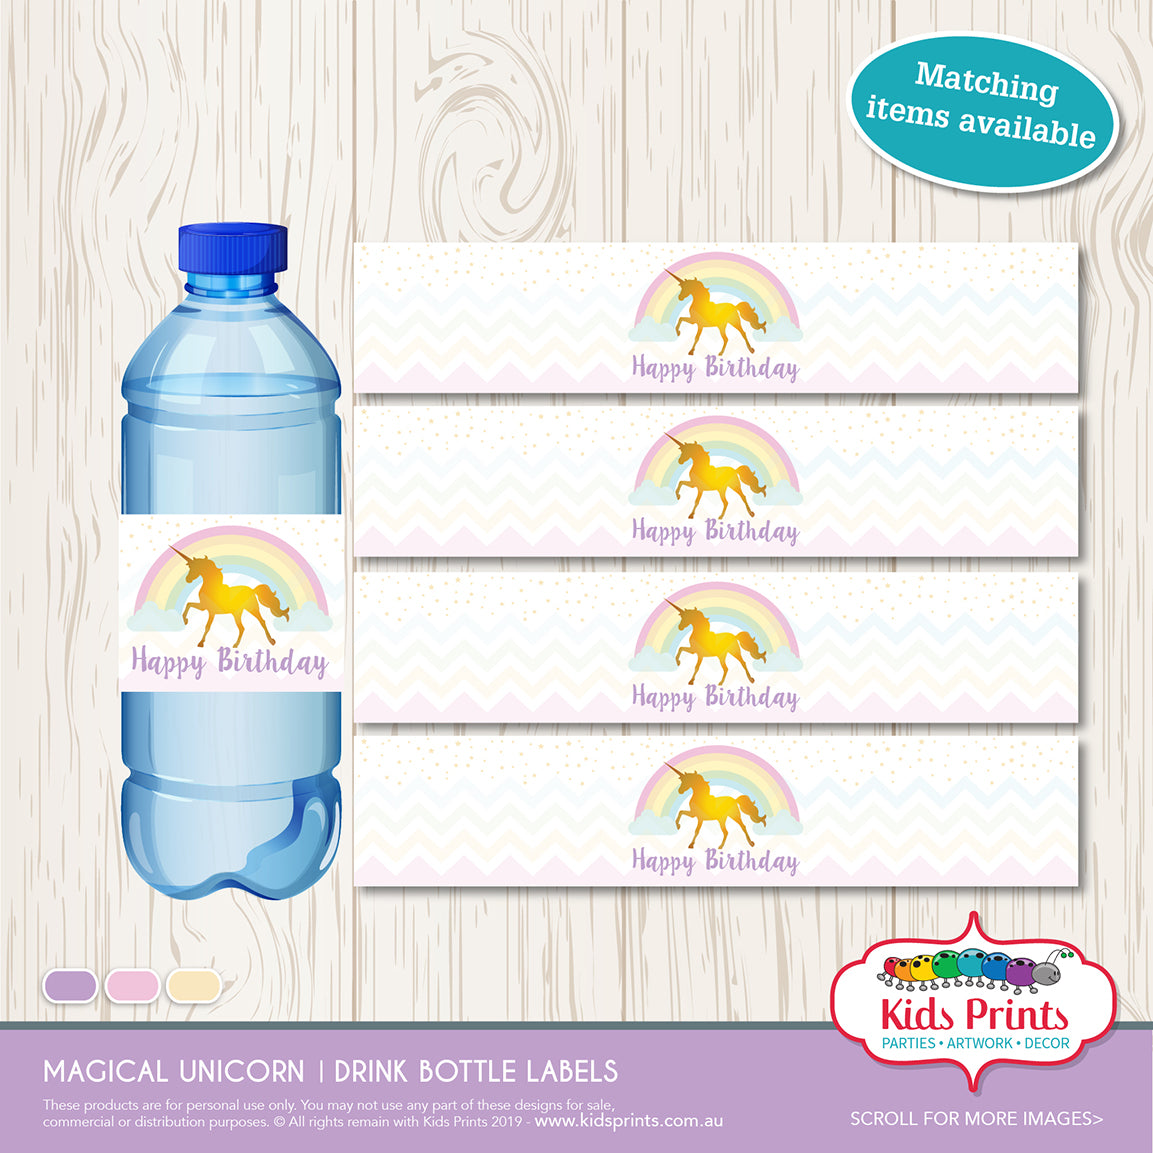 Magical Unicorn Party | Drink Bottle Label - Kids Prints Online - kids wall art printable - nursery art printable - printable invitations - digital invitations - kids wall art - kids prints